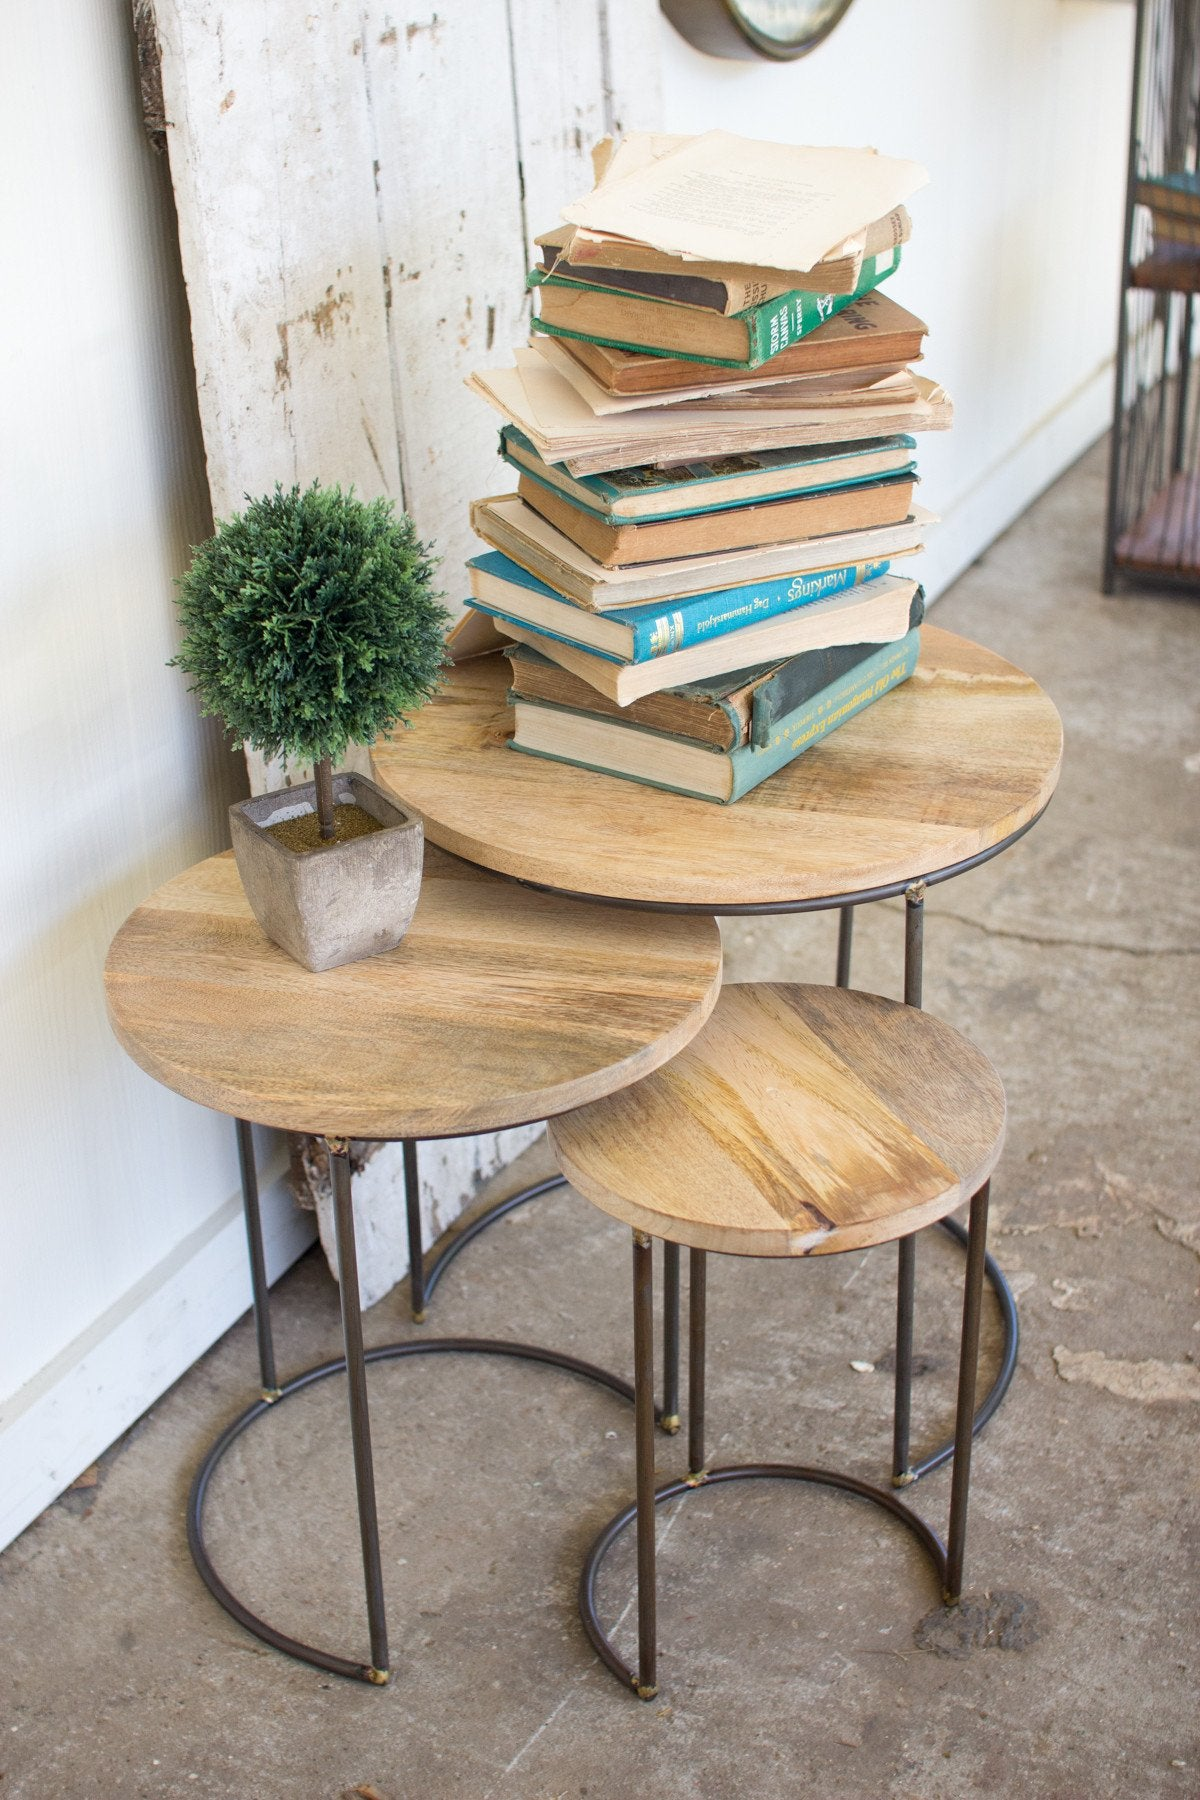 Kalalou Nesting Iron Accent Tables With Mango Wood Tops - Set Of 3